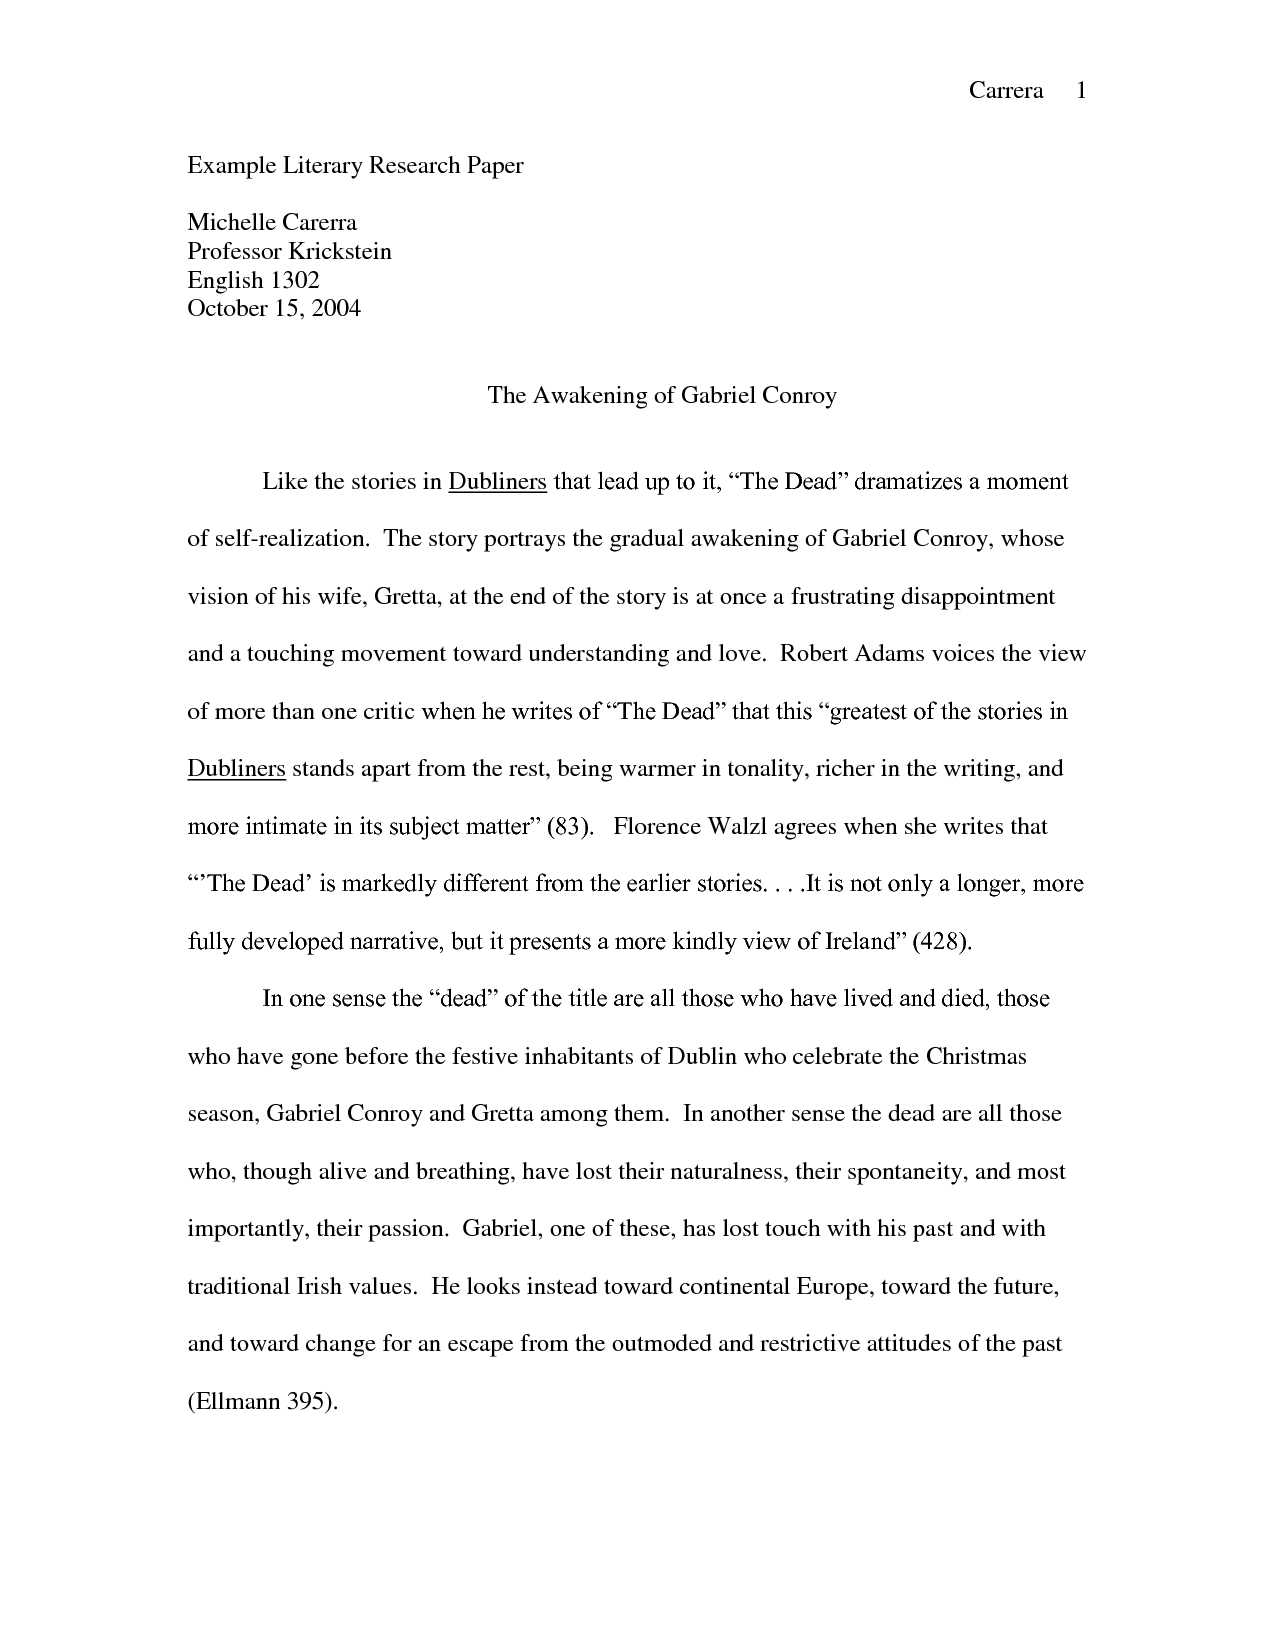 012 Research Paper Papers Example Literary 393045 Awesome Examples Mla Apa 6th Edition Full